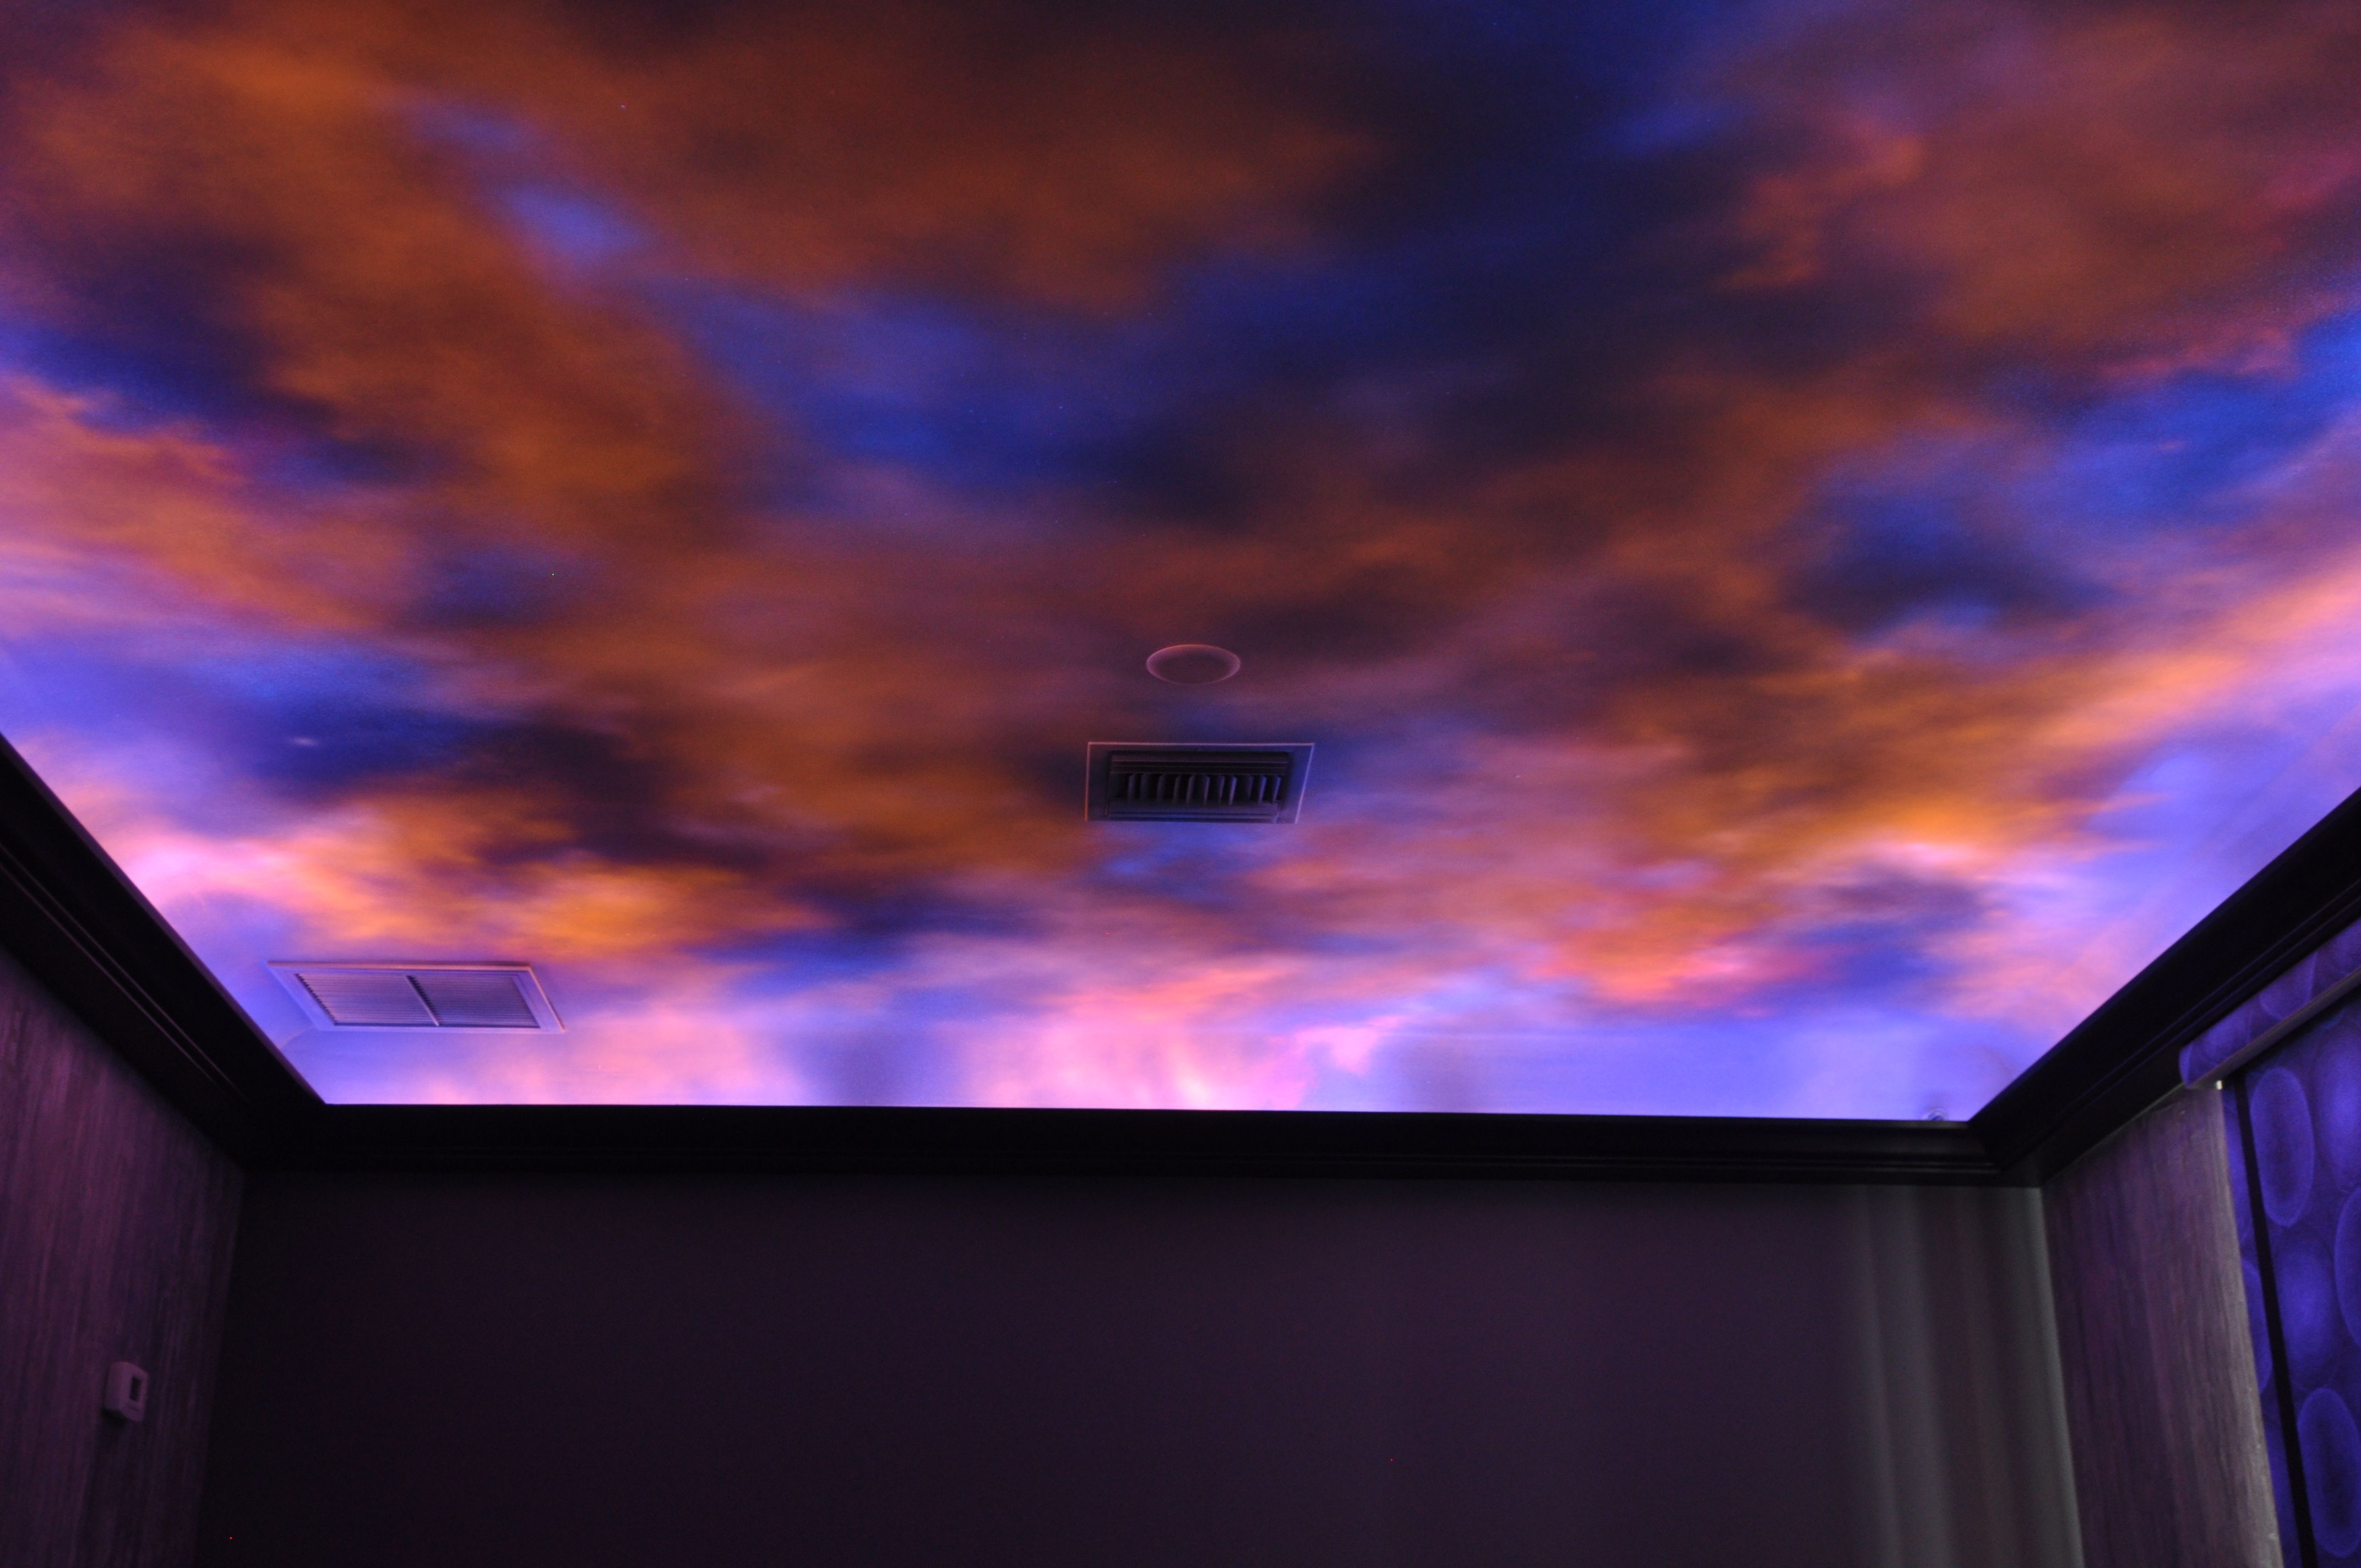 Turn your rooms into a far away galaxy or just go crazy with your turn your rooms into a far away galaxy or just go crazy with your imagination a custom painted black light ceiling and walls is the talk of any home aloadofball Images